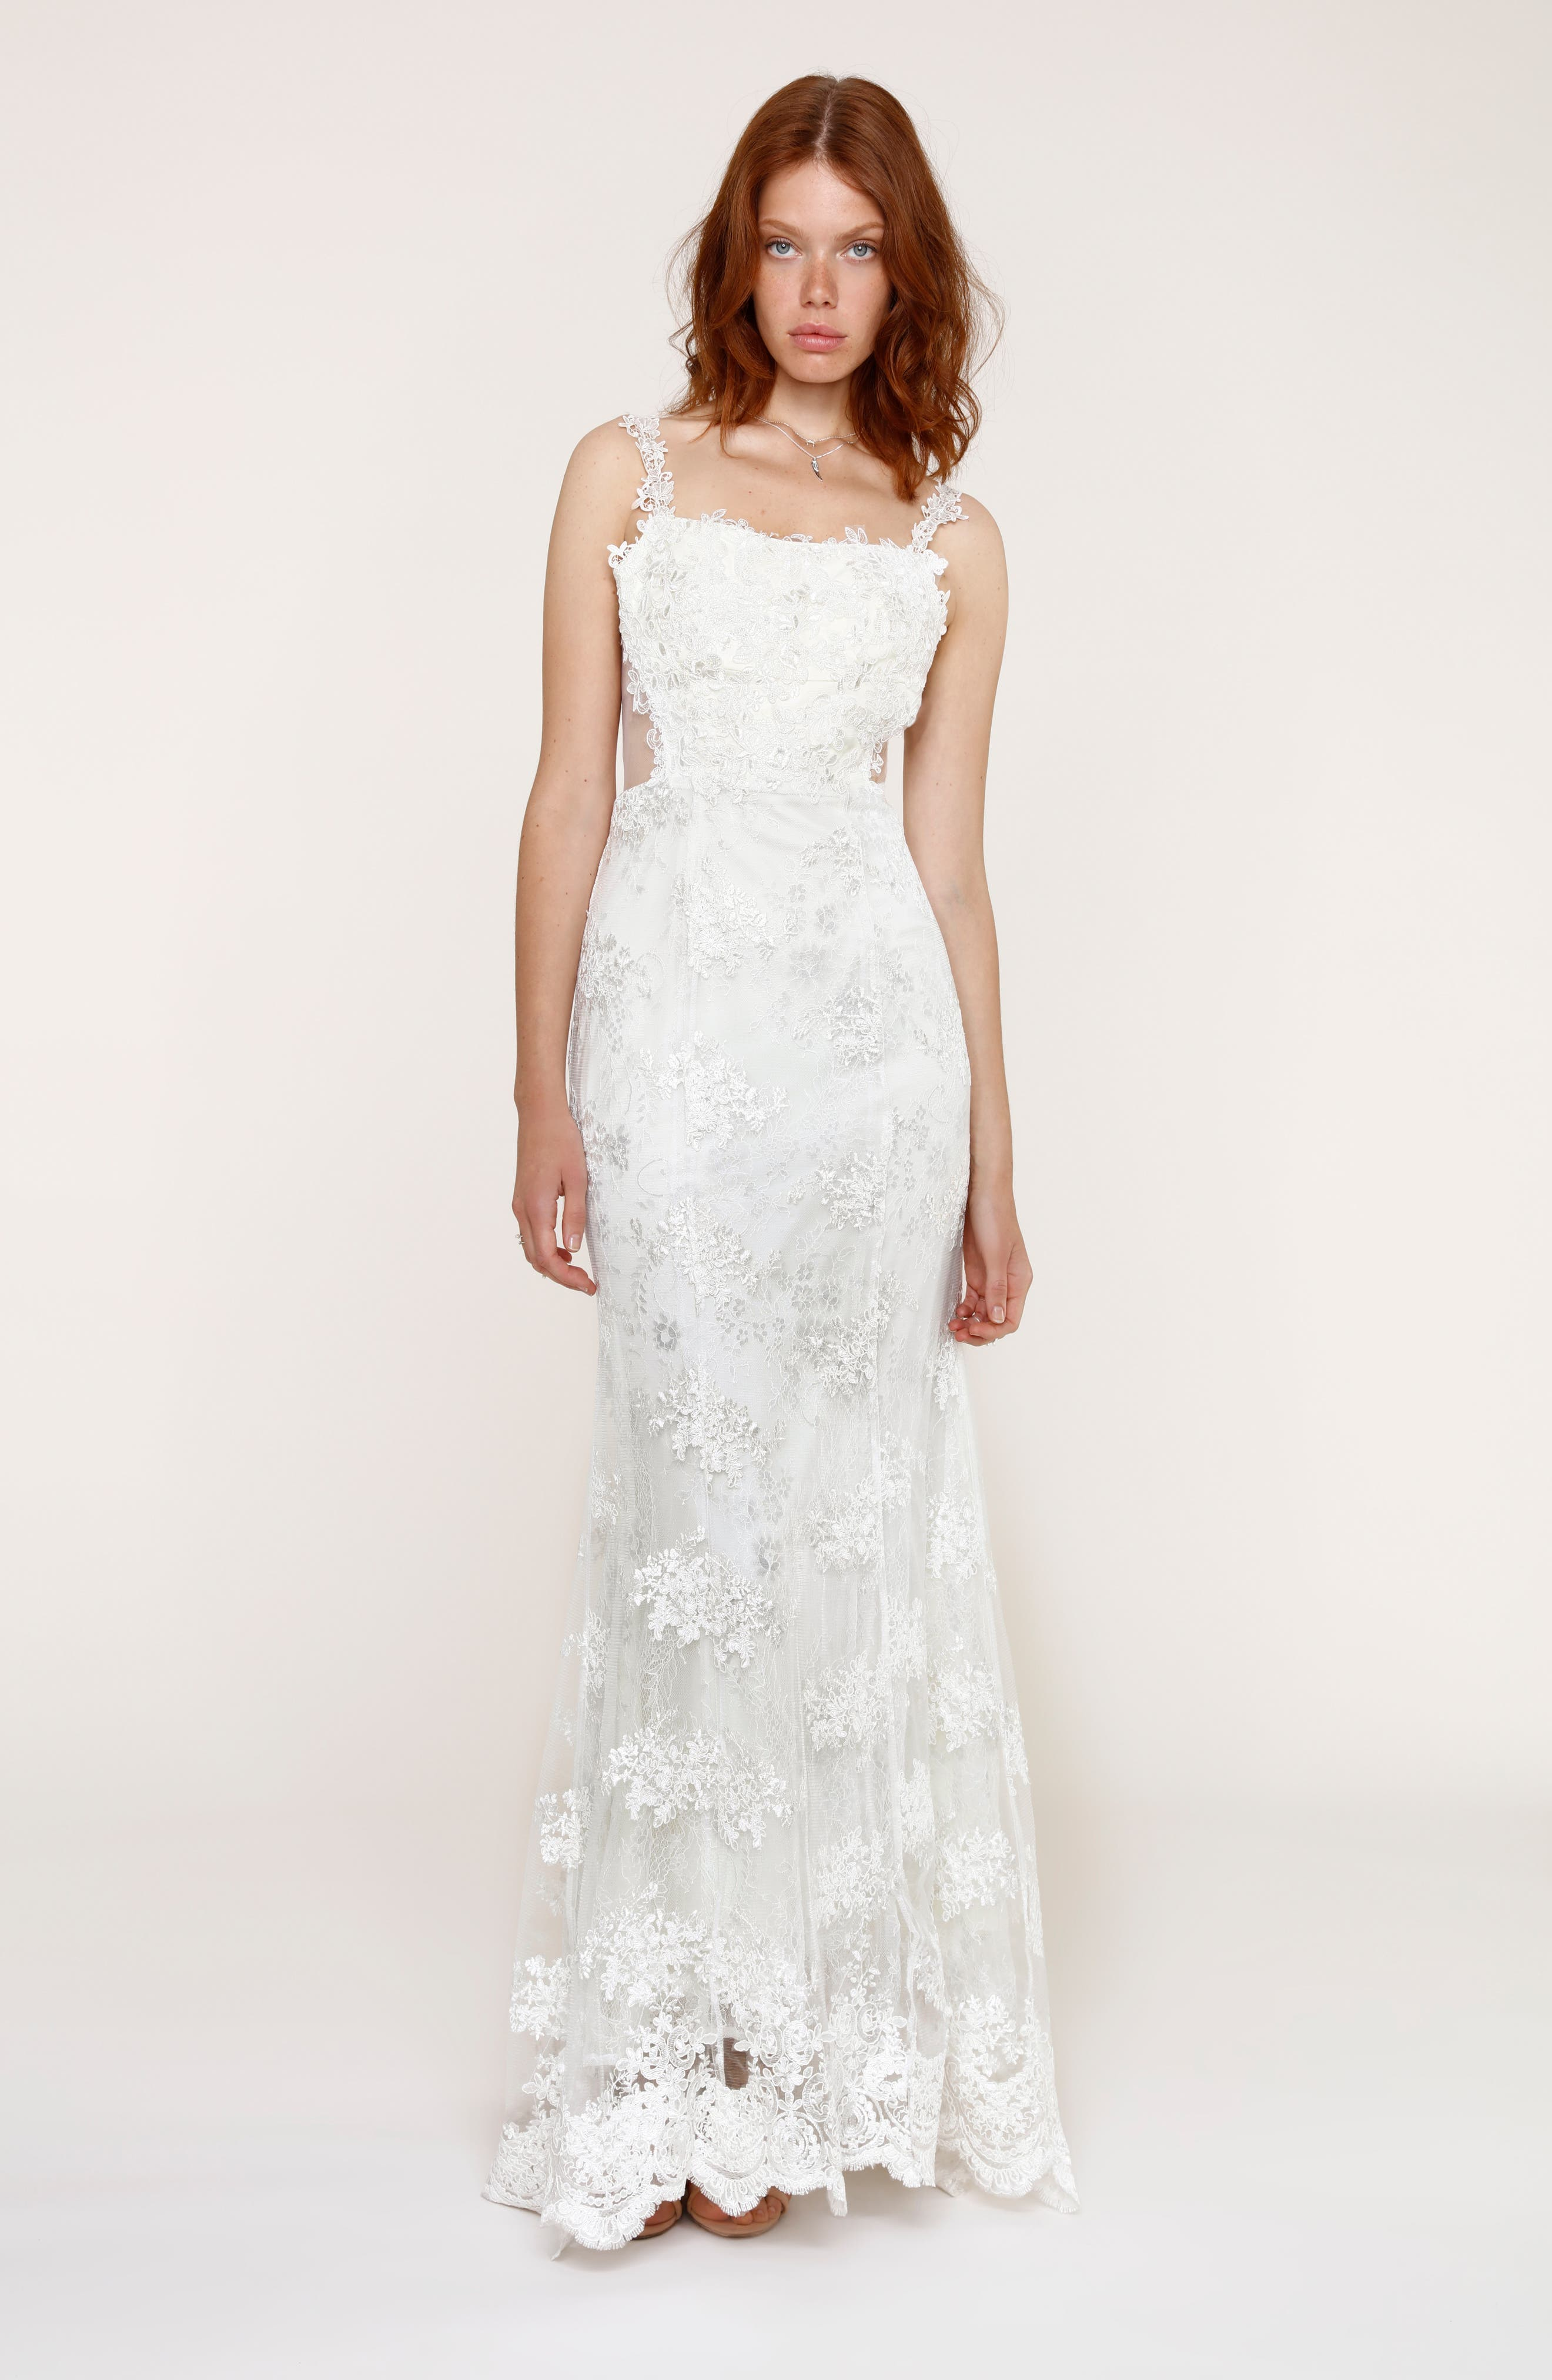 Main Image - Heartloom Andie Illusion Side Lace Mermaid Gown